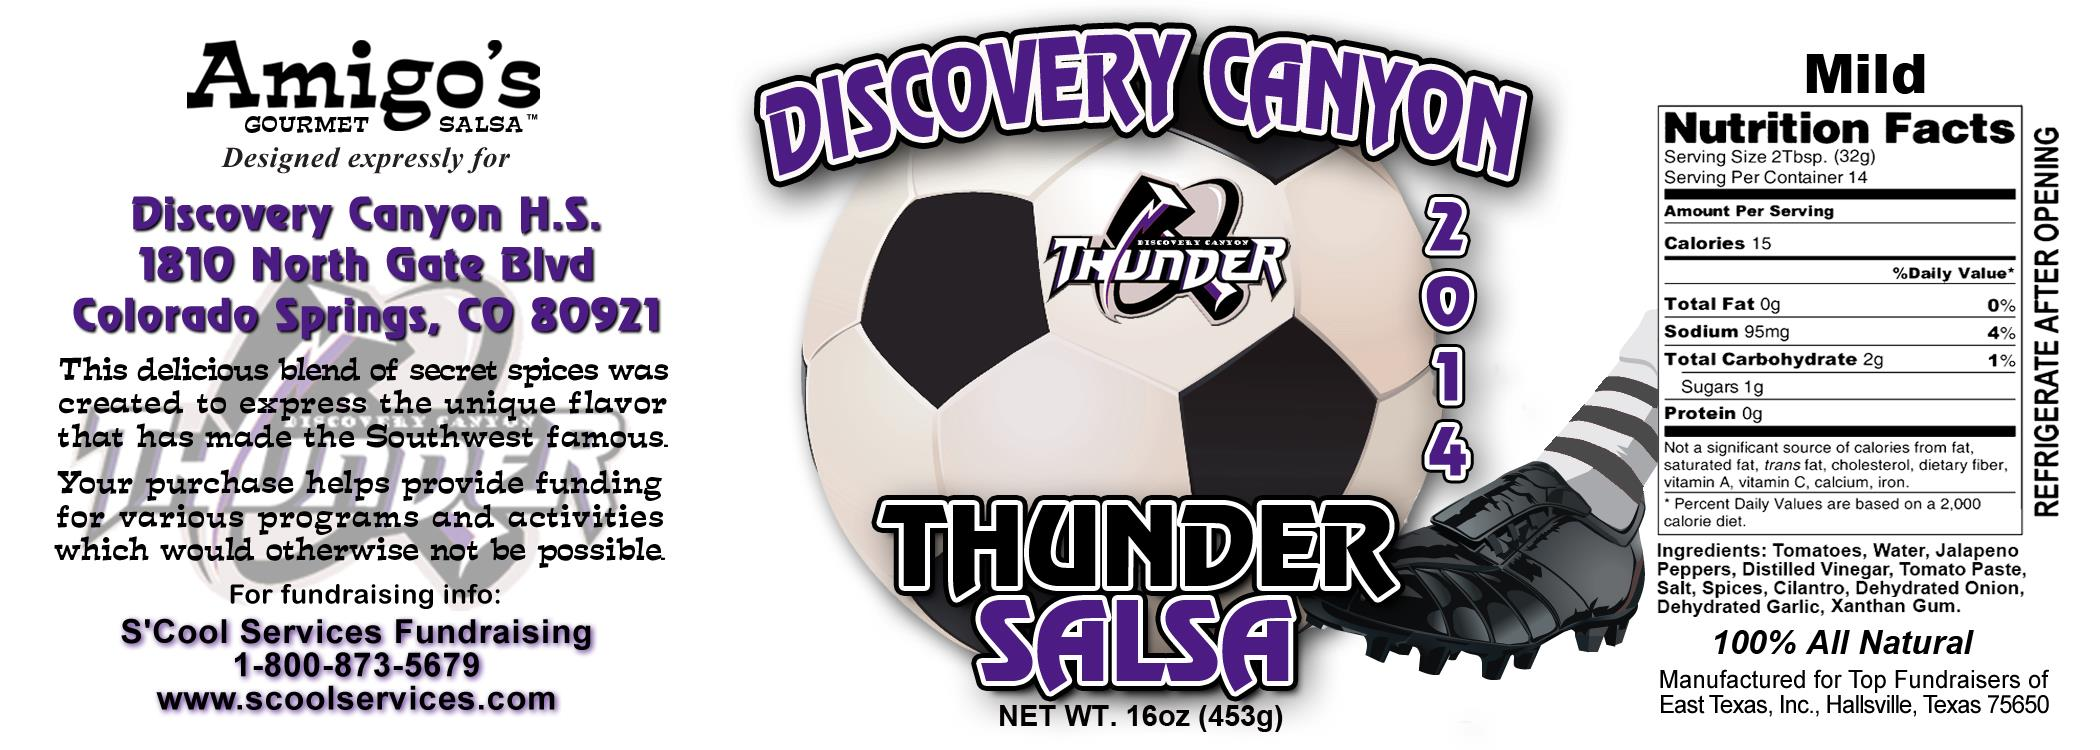 Discovery Canyon Soccer MILD.jpg